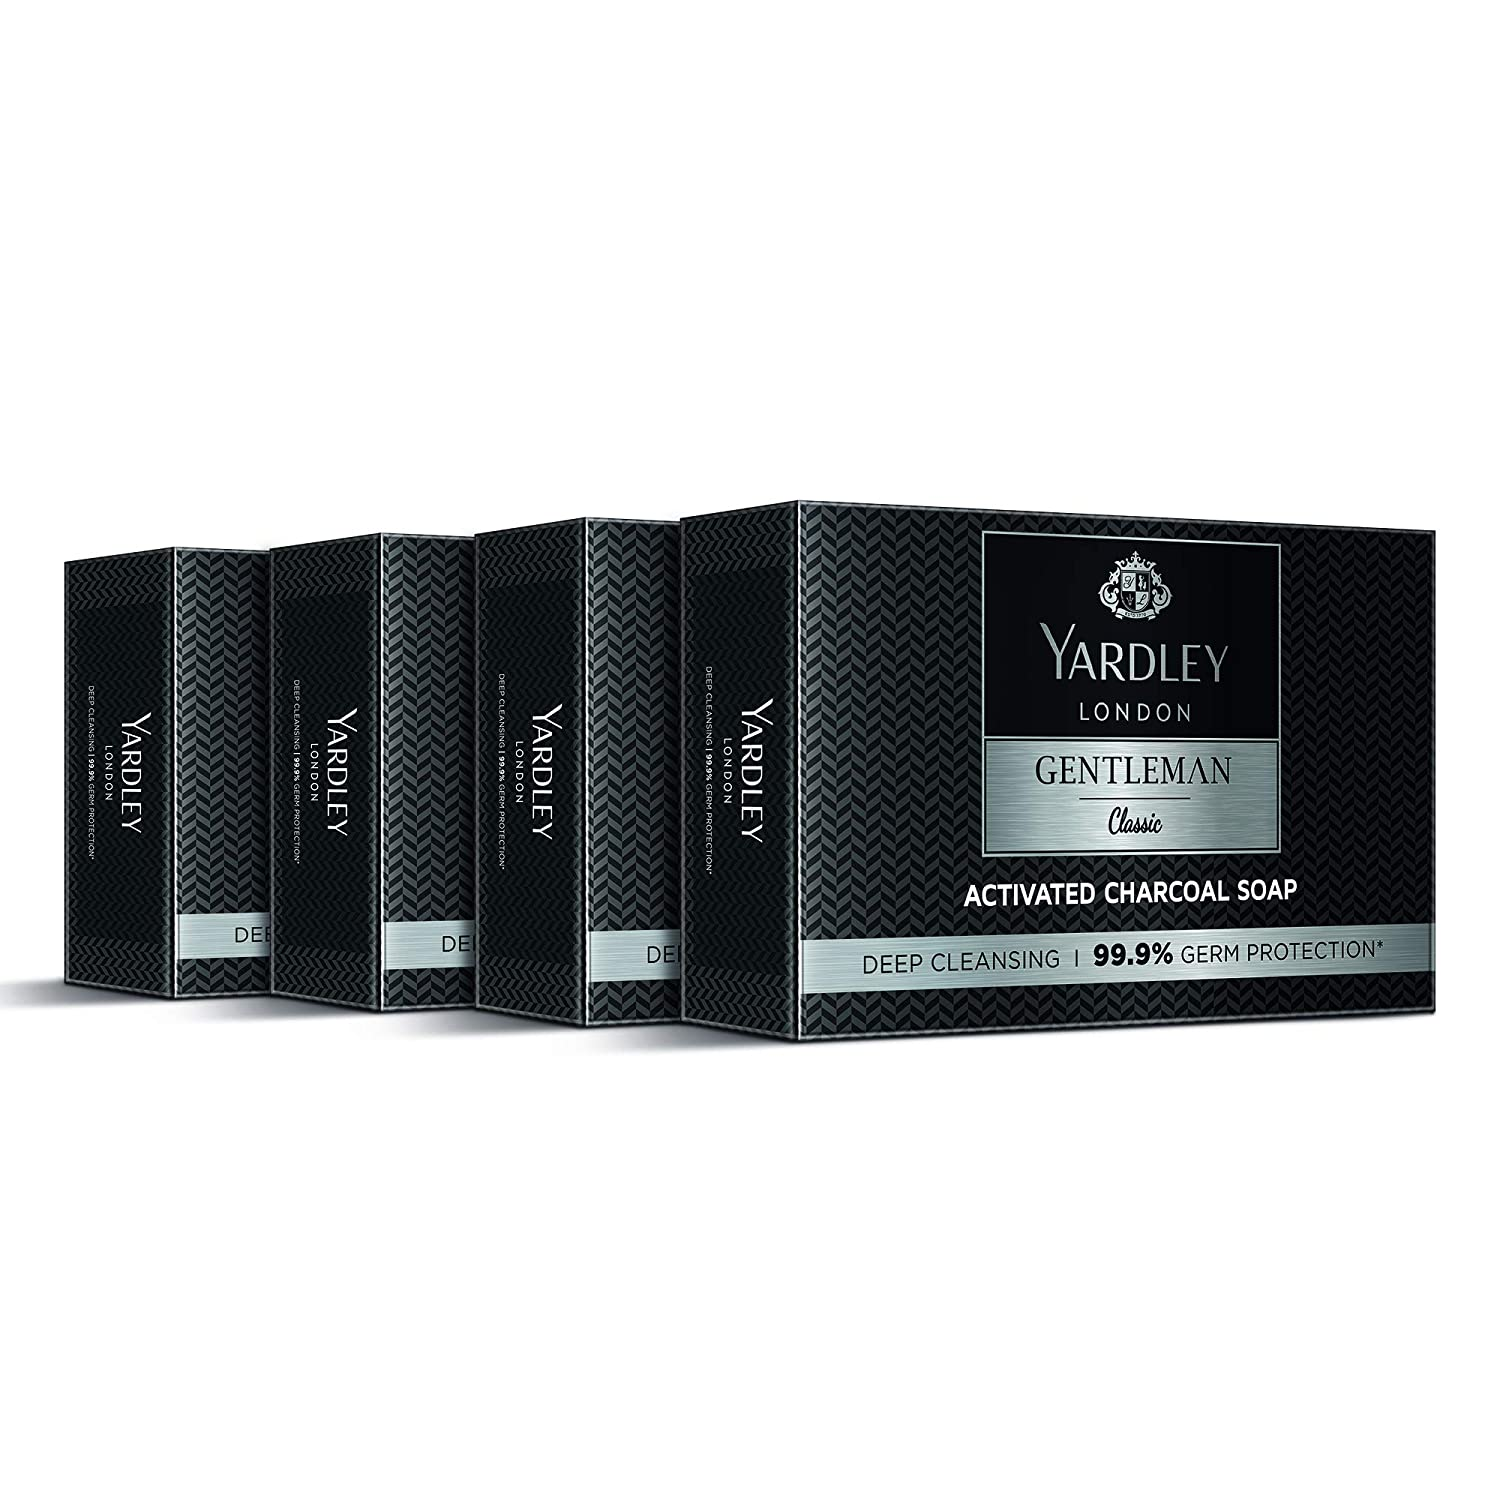 [Apply coupon] Yardley London Gentleman Classic Activated Charcoal Soap, 100 g (Pack of 4)